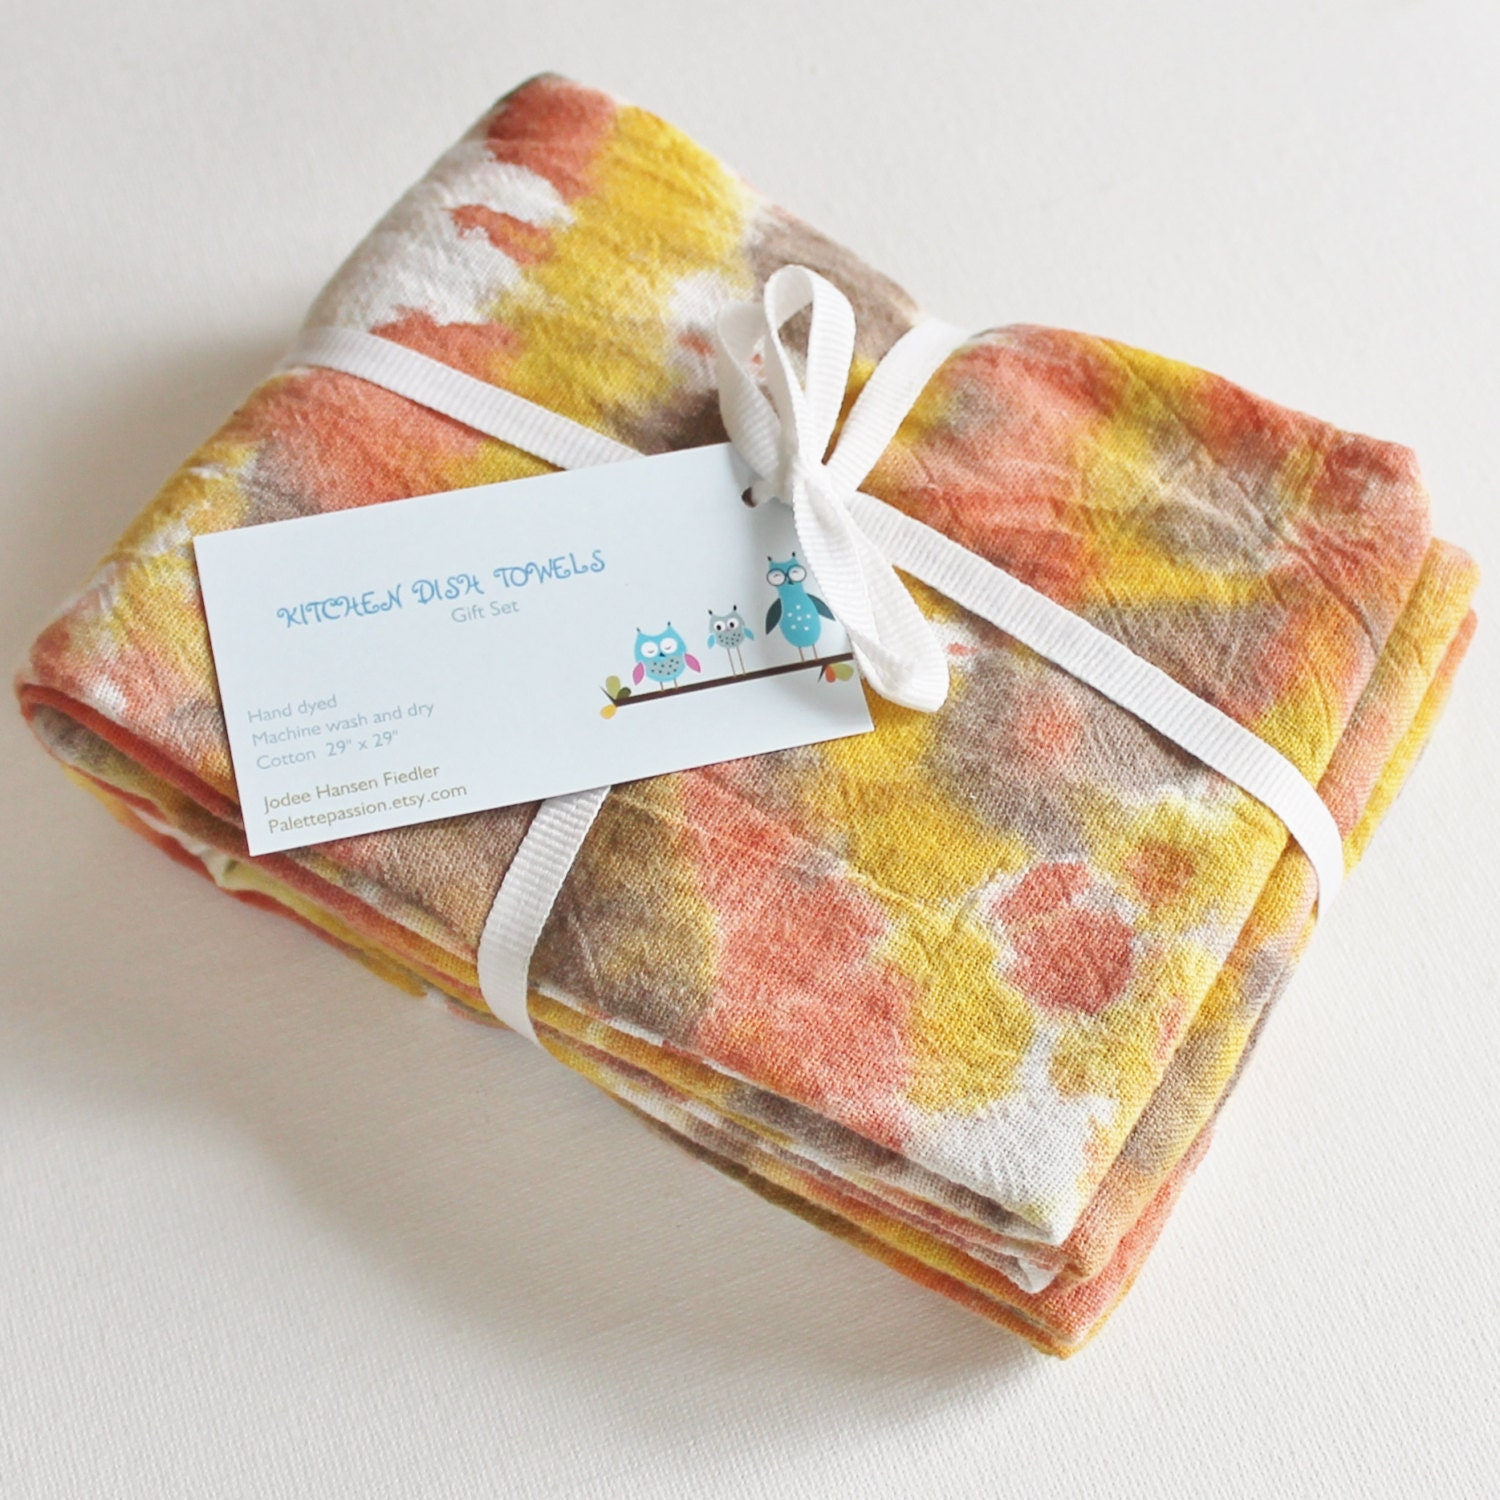 Hand Dyed Kitchen Towels Flour Sack Tea Towel Set of 2 Tie